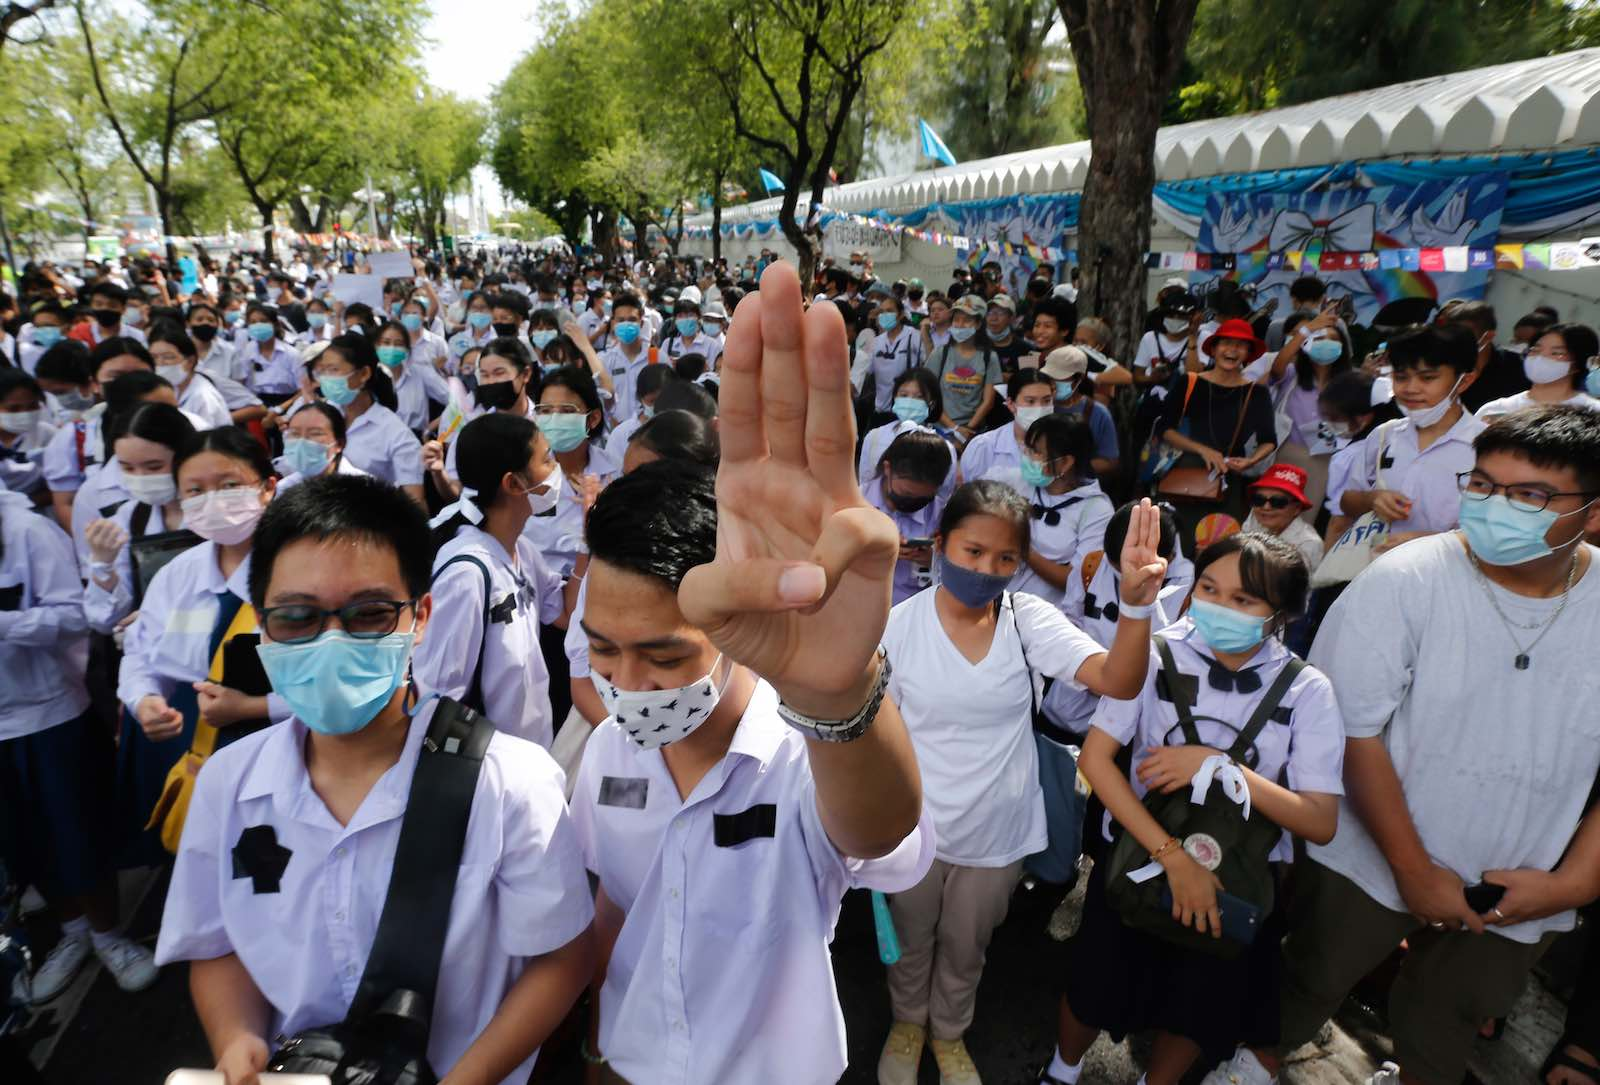 A Thai student gives a three-finger salute during a rally outside the Ministry of Education, Bangkok, 5 September 2020 (Chaiwat Subprasom/SOPA Images/LightRocket via Getty Images)